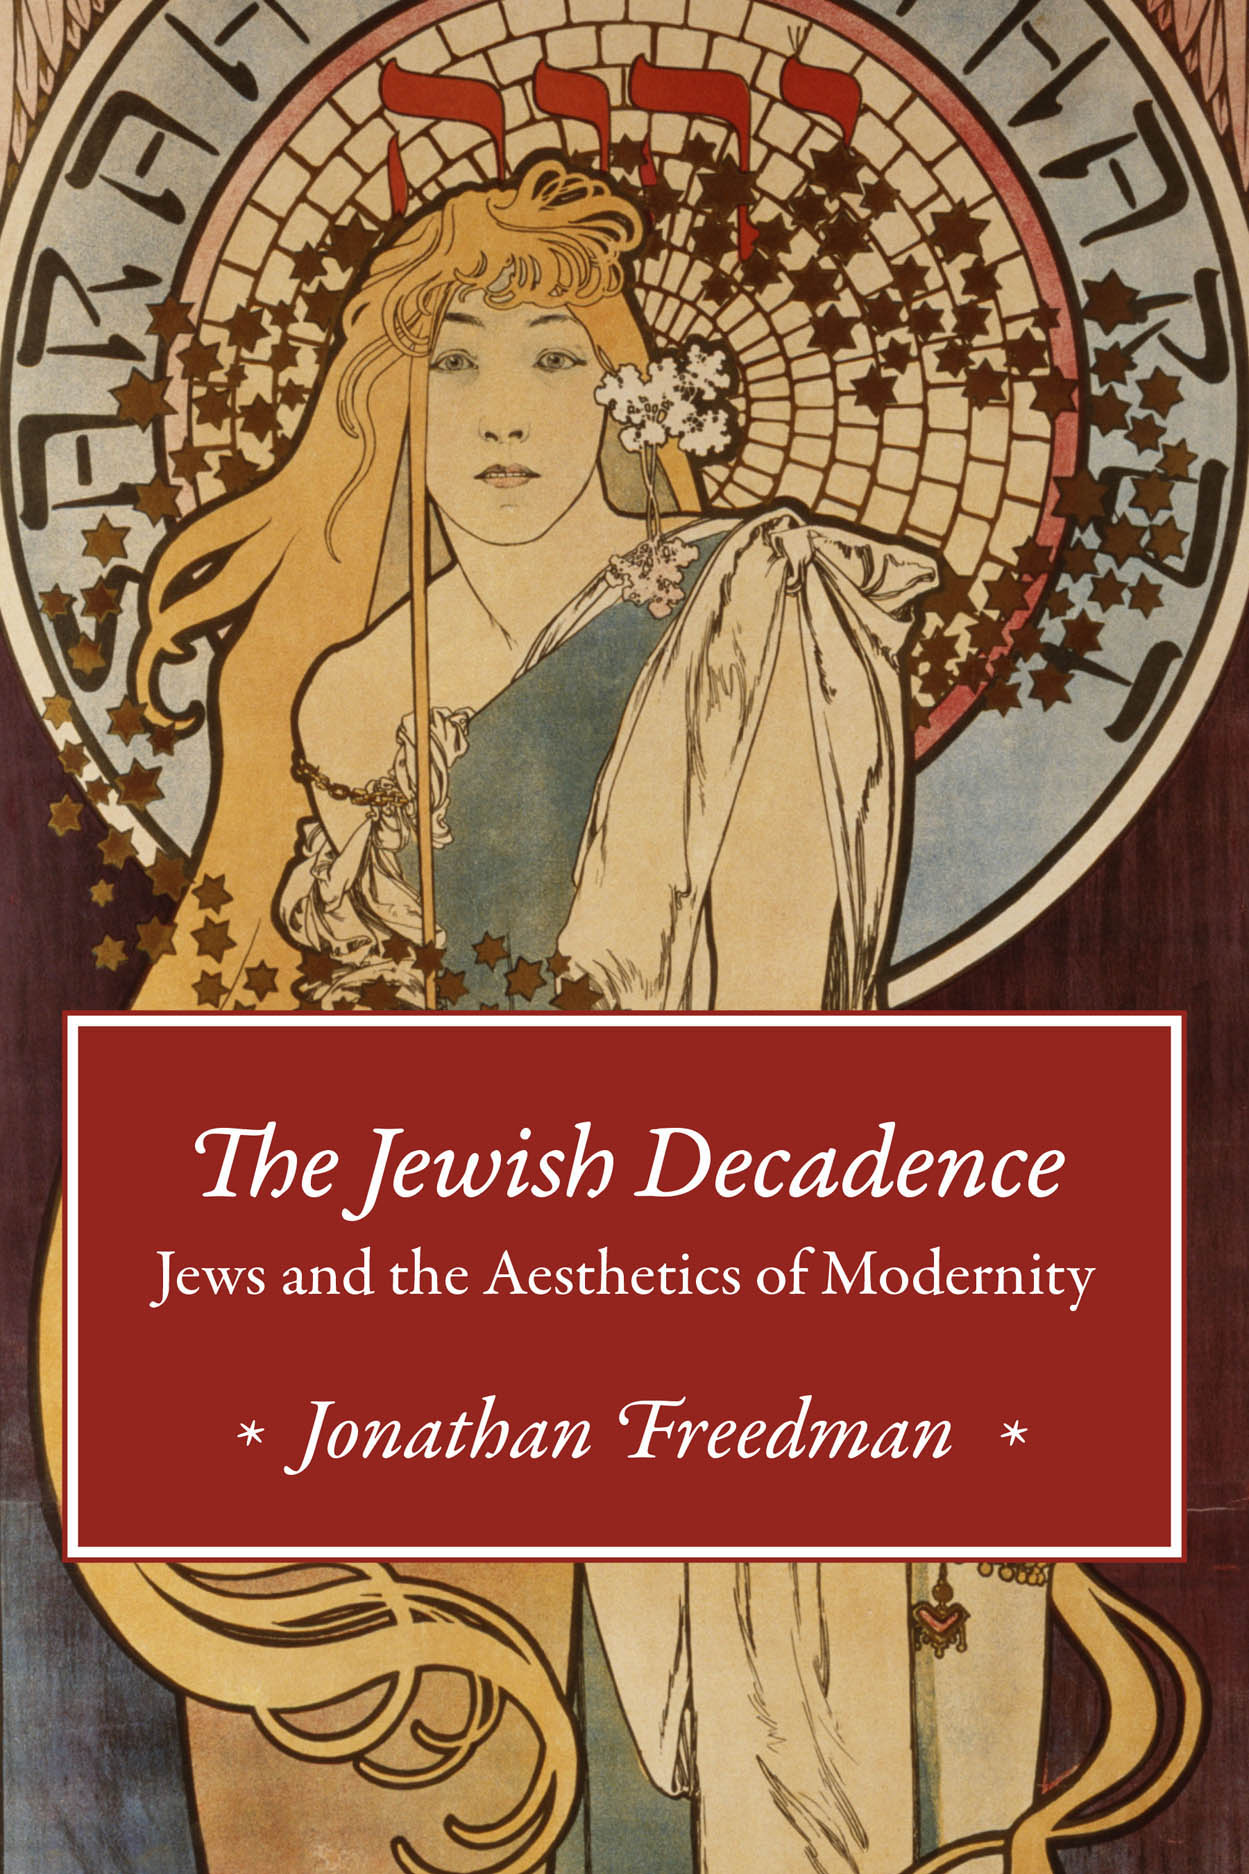 The Jewish Decadence: Jews and the Aesthetics of Modernity